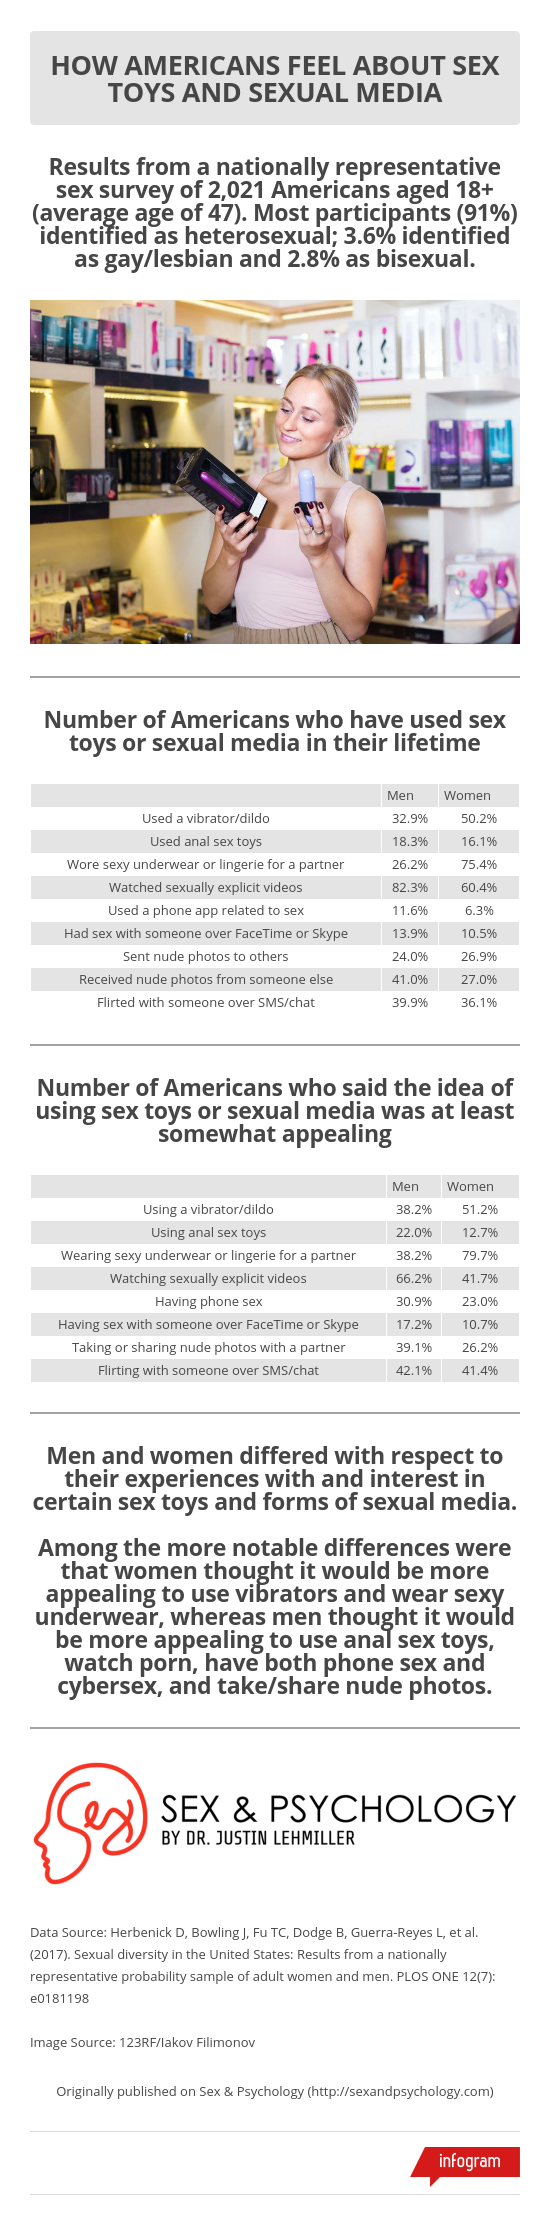 infographic-sex-toys-sexual-media.png